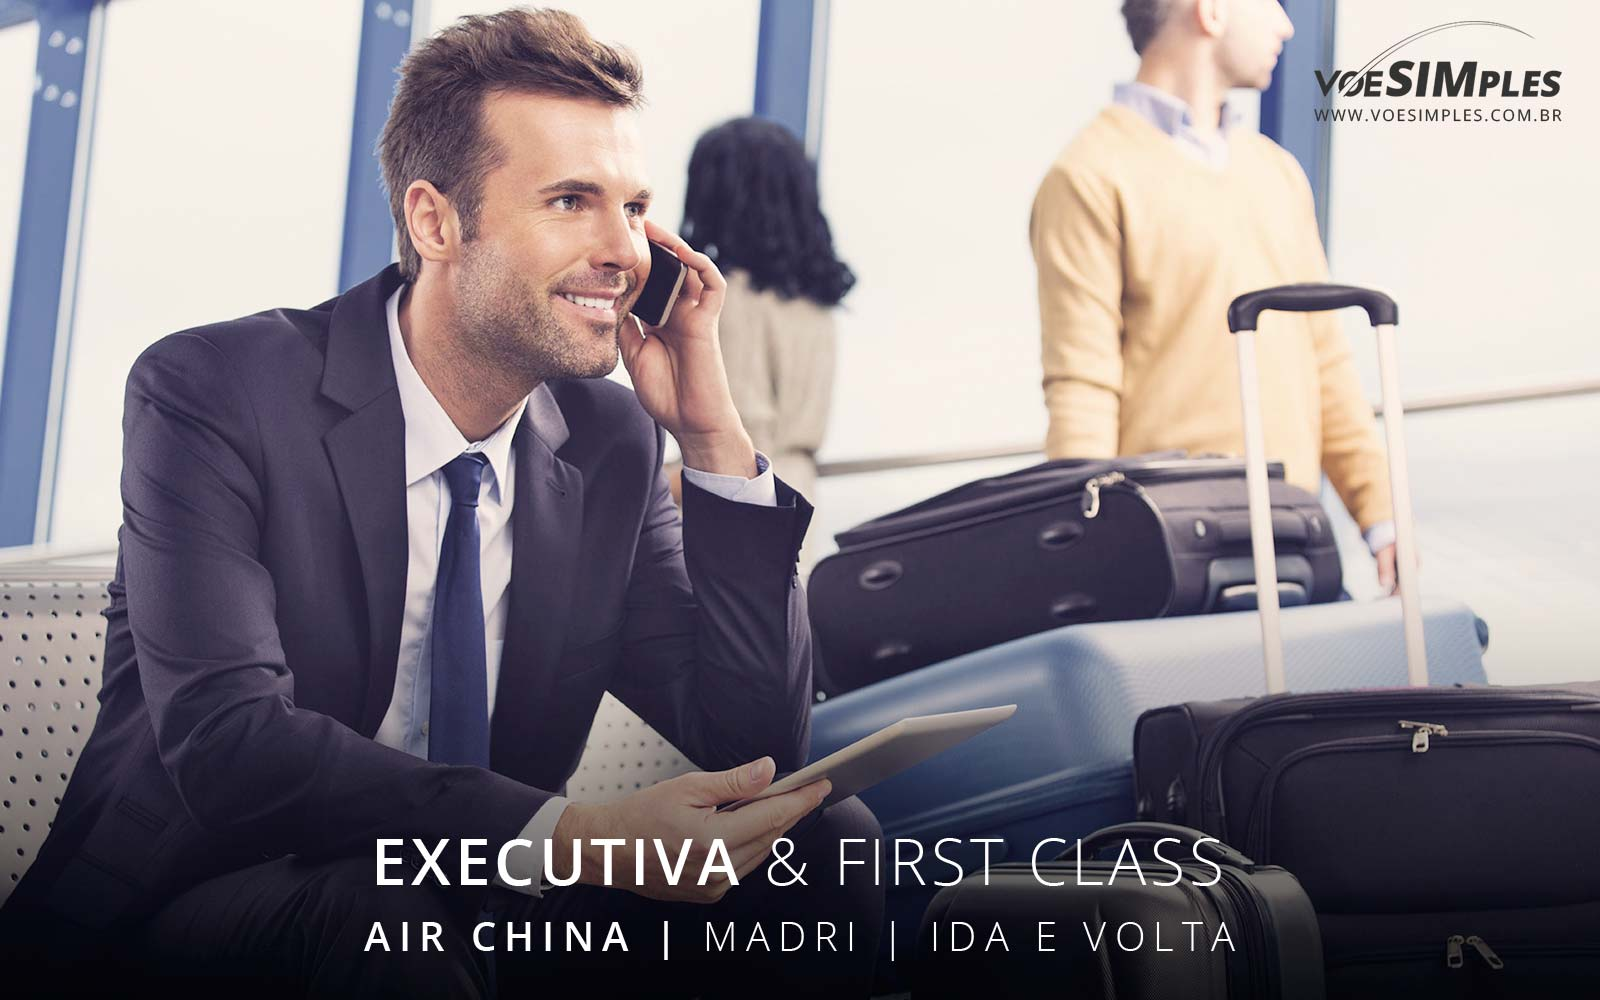 Passagem aérea classe executiva Air China